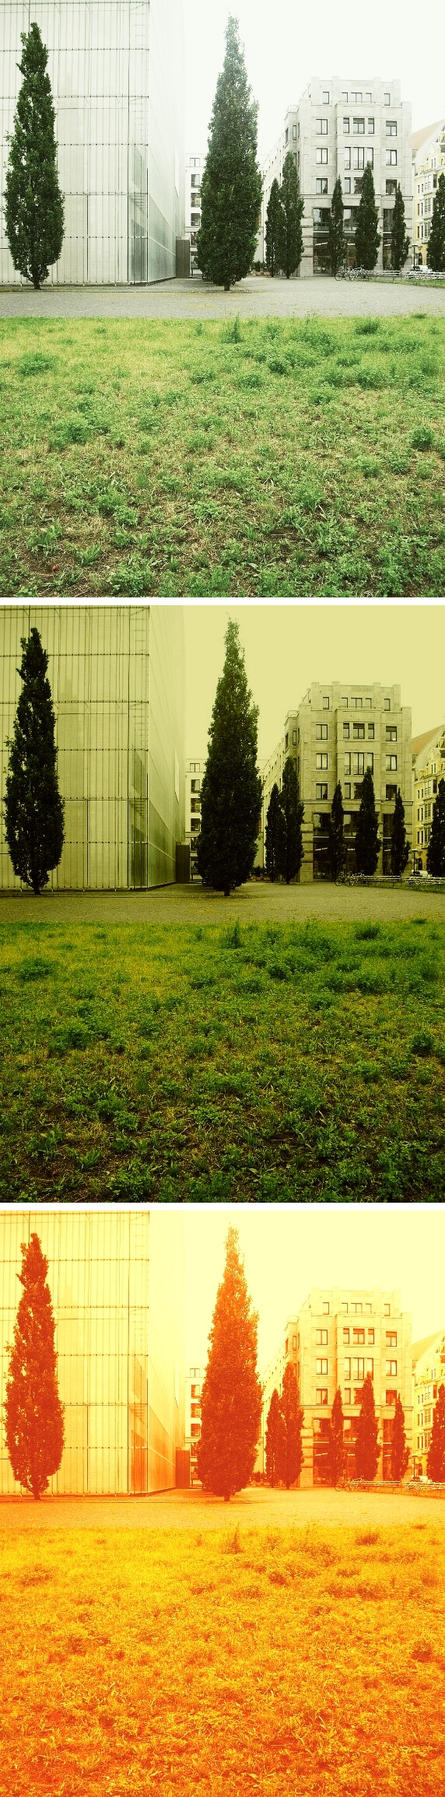 Trees and art museum by untermbettheuer